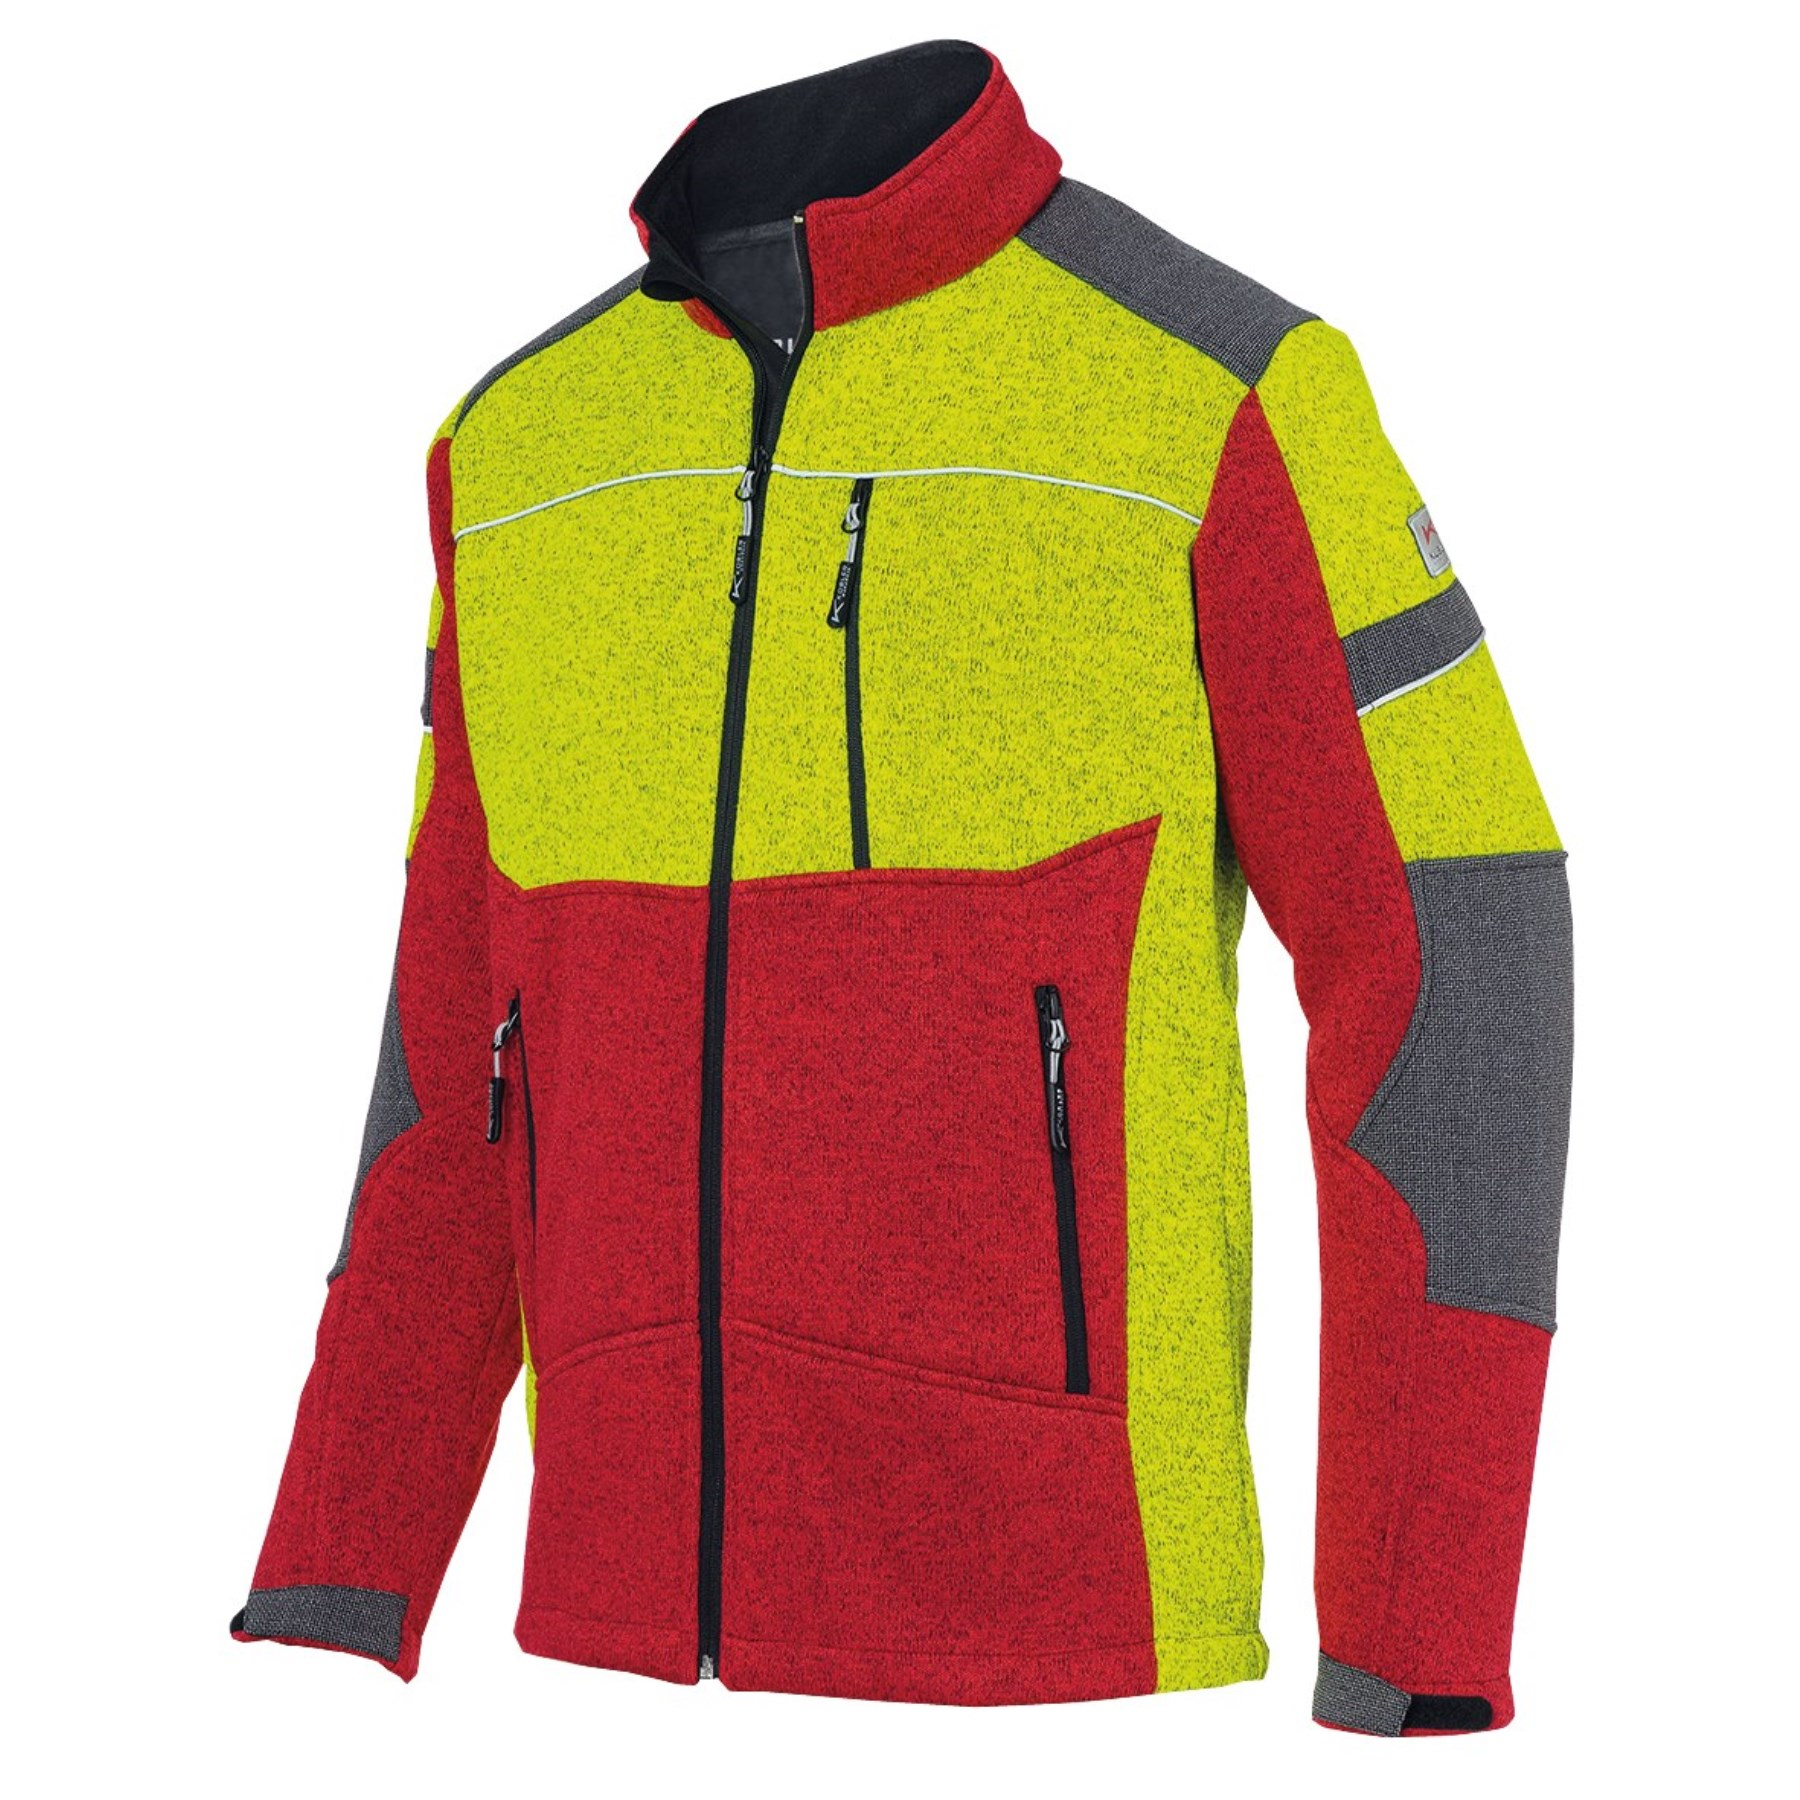 1253884 - Strickjacke Forest Gr.S rot/gelb